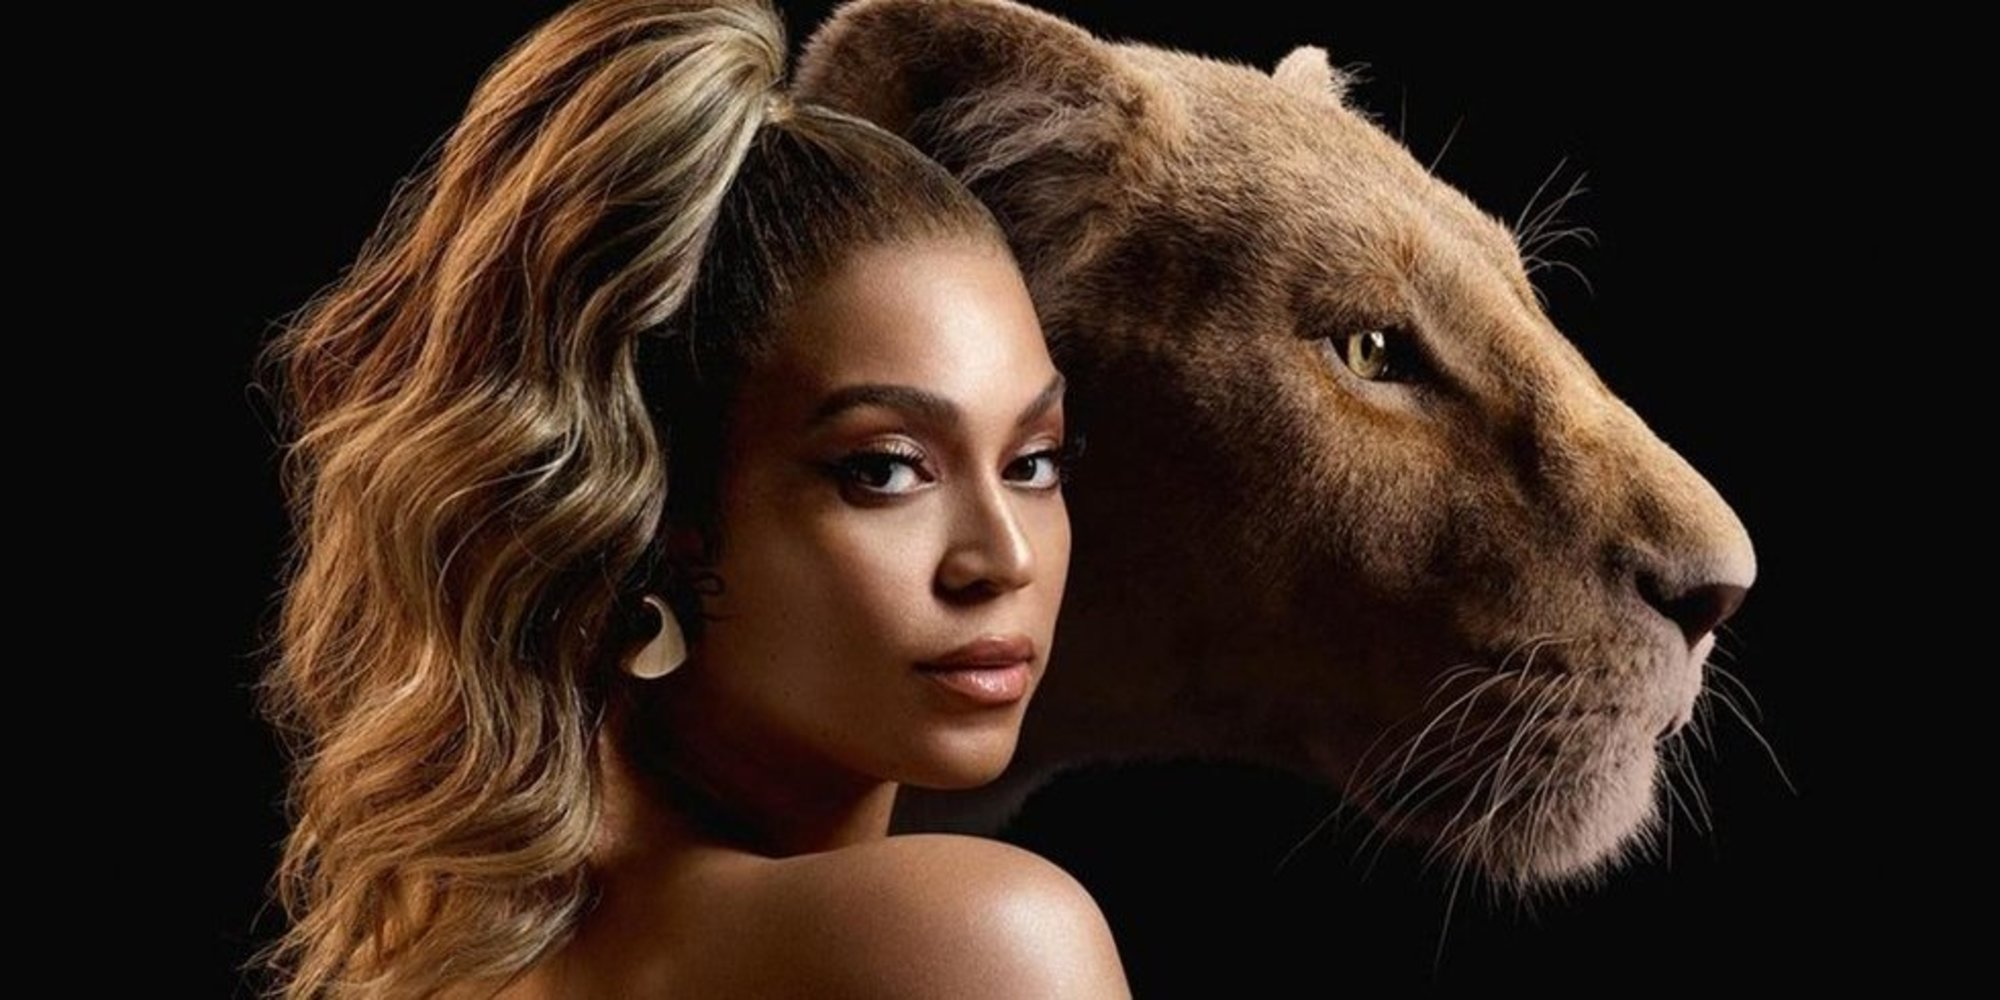 Beyonce Features Six Nigerian Singers Including Wizkid, Tiwa Salvage In New Album 'Lion King' 1